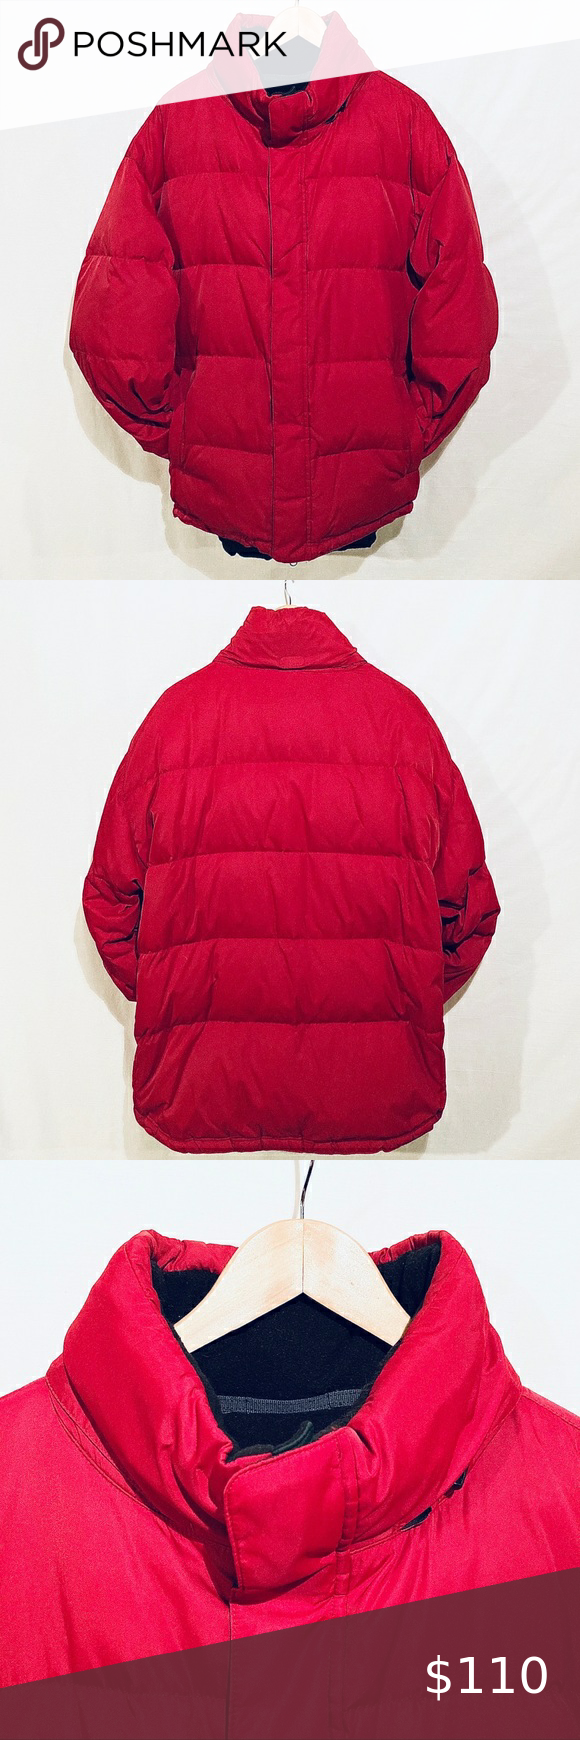 Gap Puffer Jacket Own The Rain Cold Sleet And Snow With This Jacket By Gap Classic Puffer Styl Winter Puffer Coat Military Jacket Green Mens Puffer Jacket [ 1740 x 580 Pixel ]